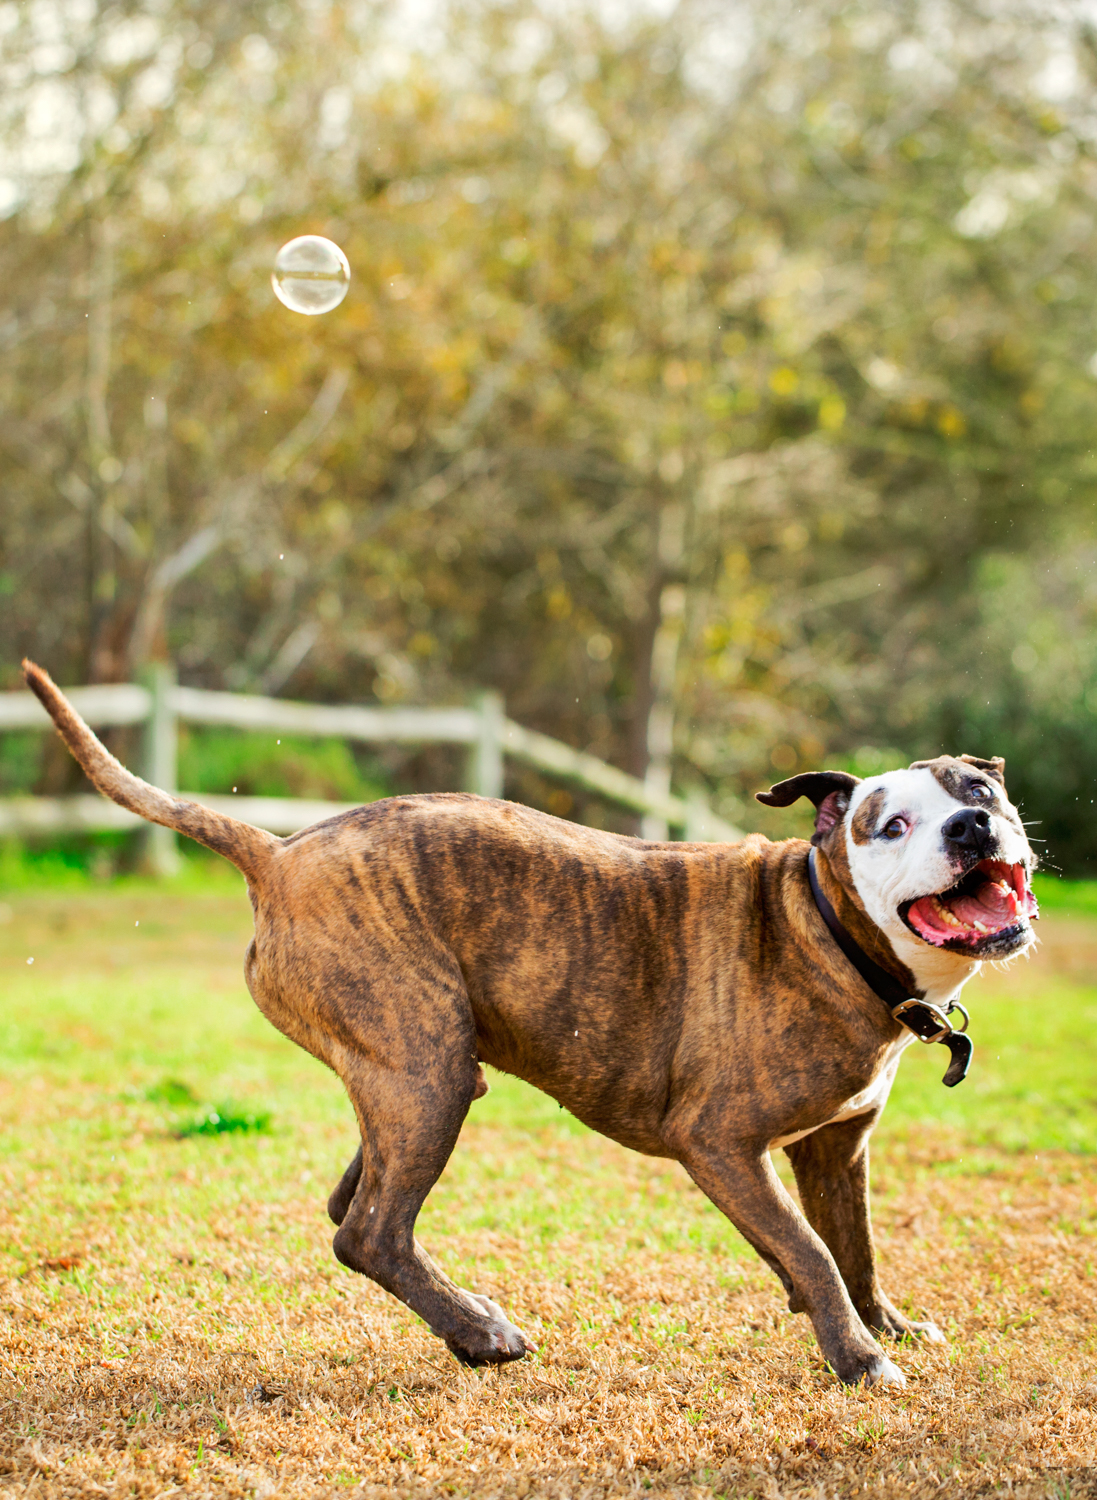 _WebsiteDogs52BusterBubbles_45_1500.JPG